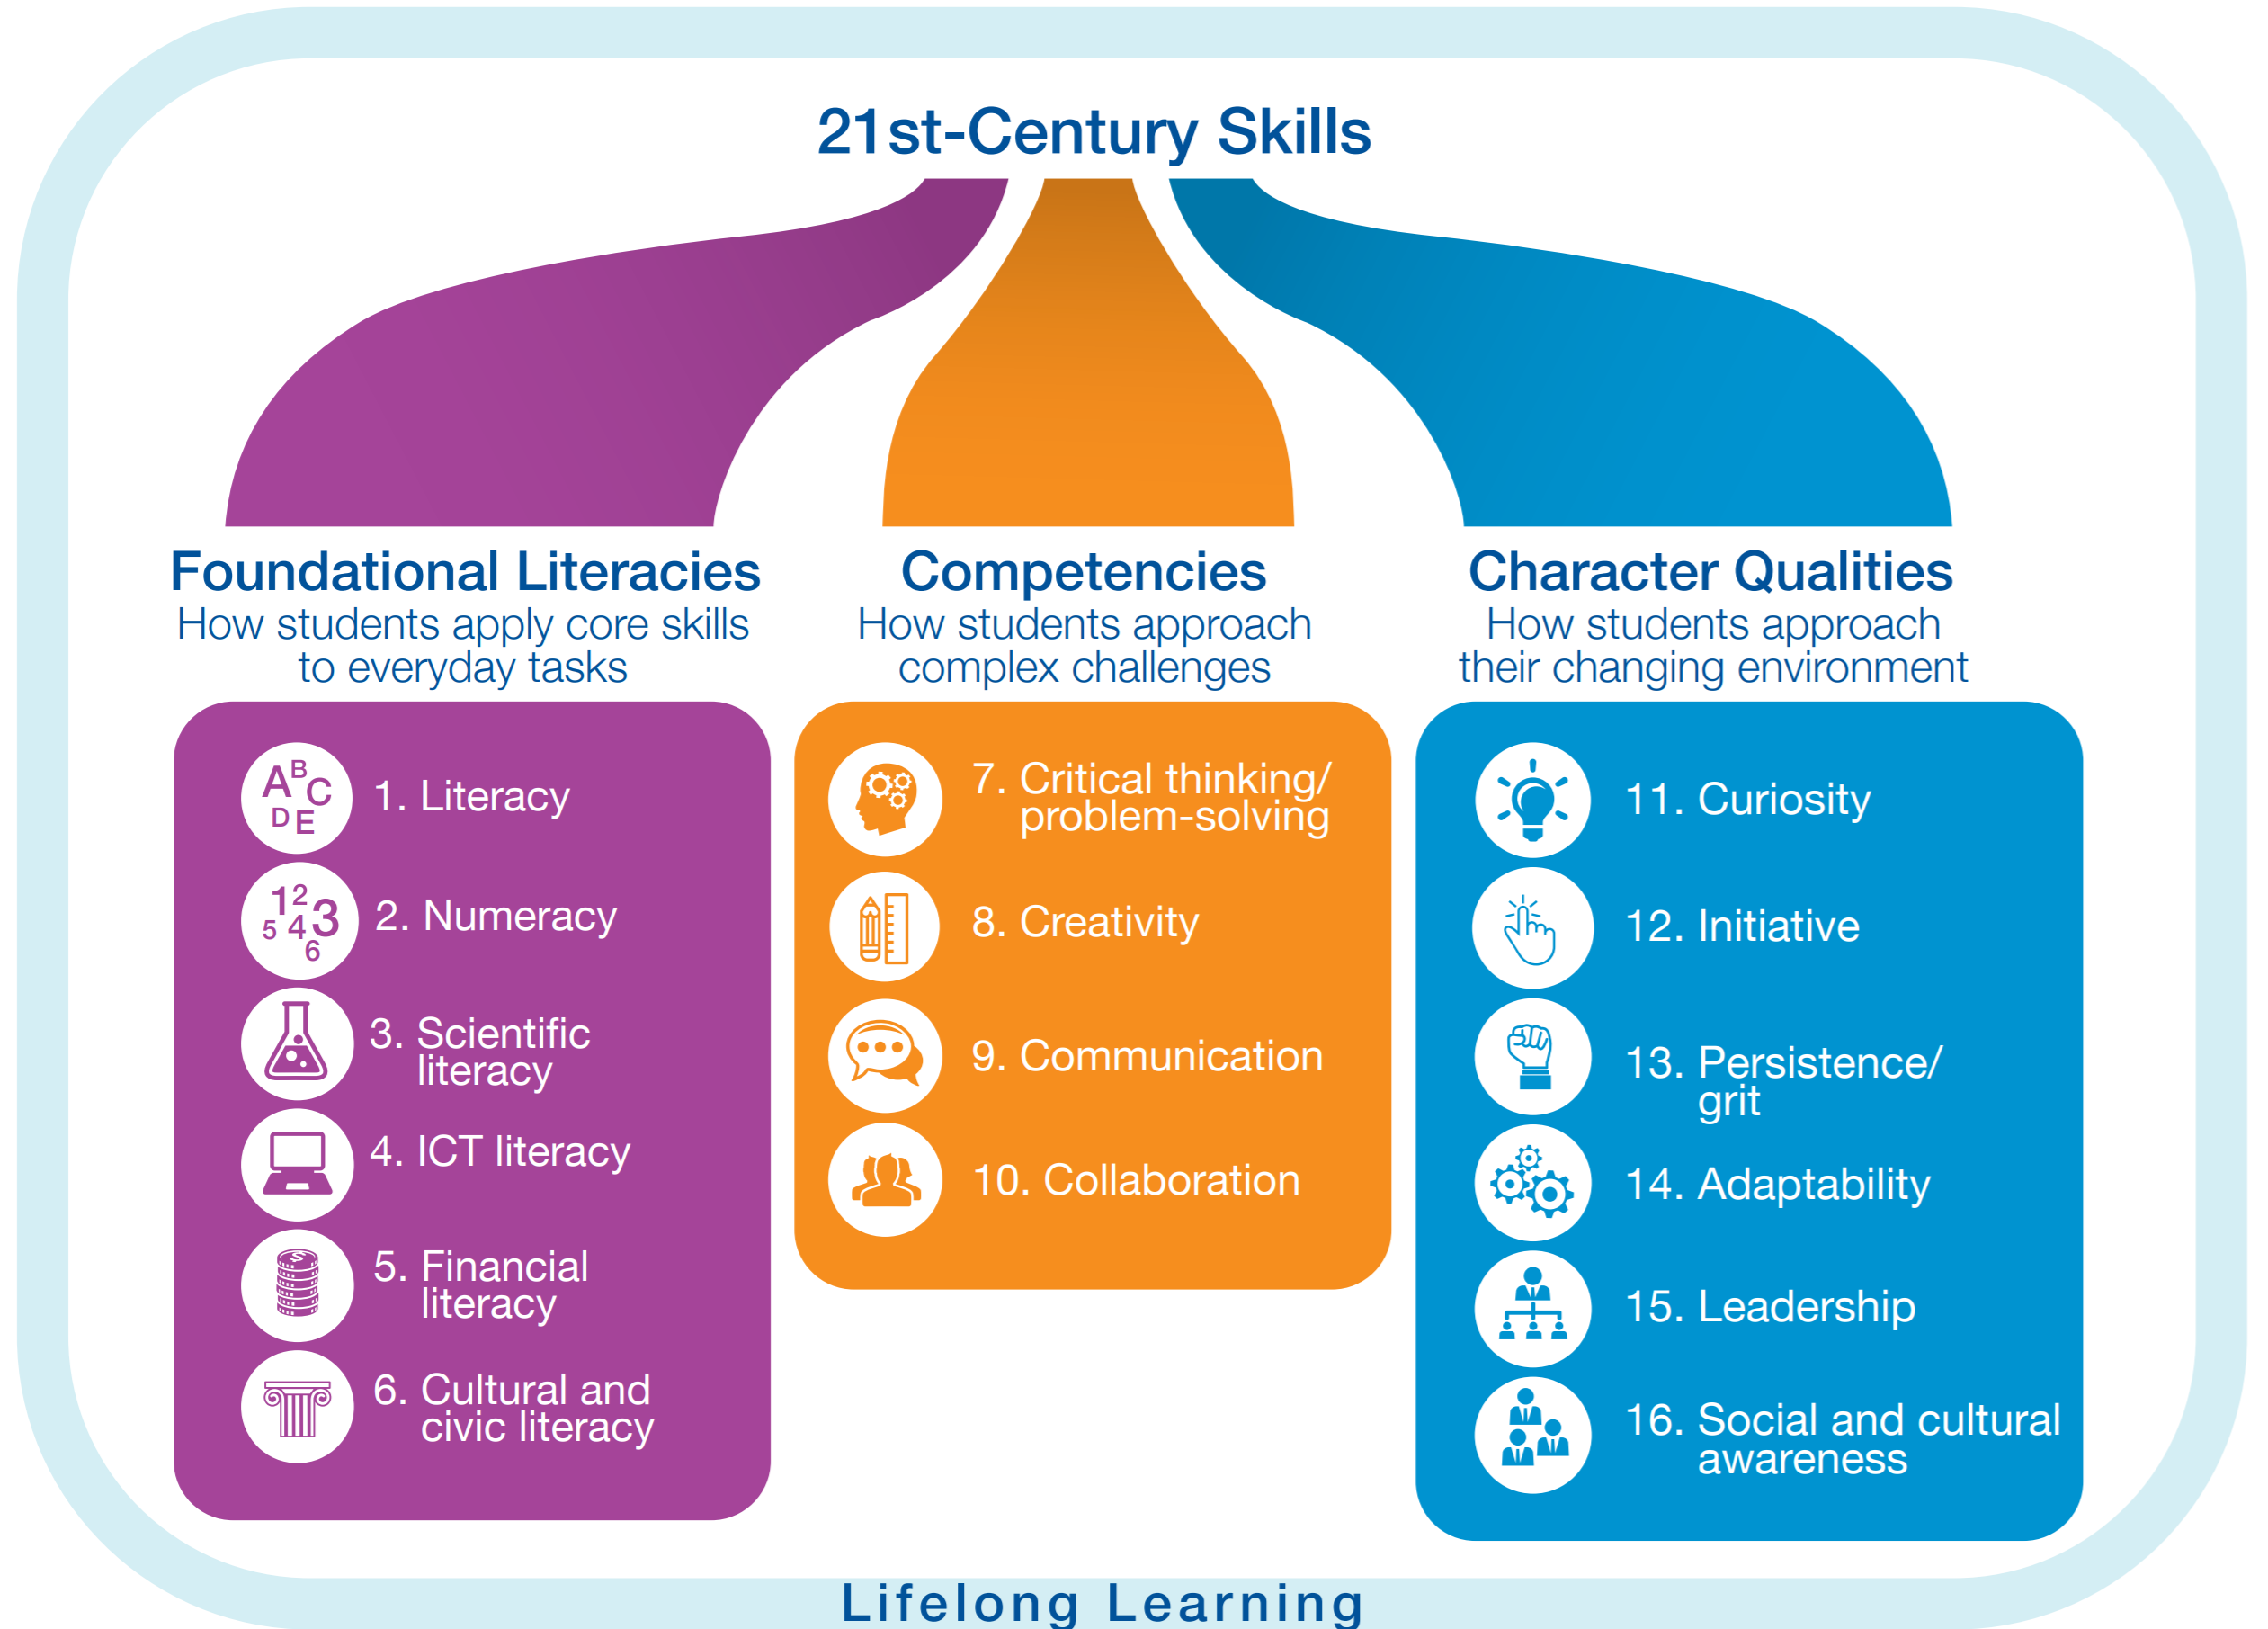 Students require 16 skills for the 21st century